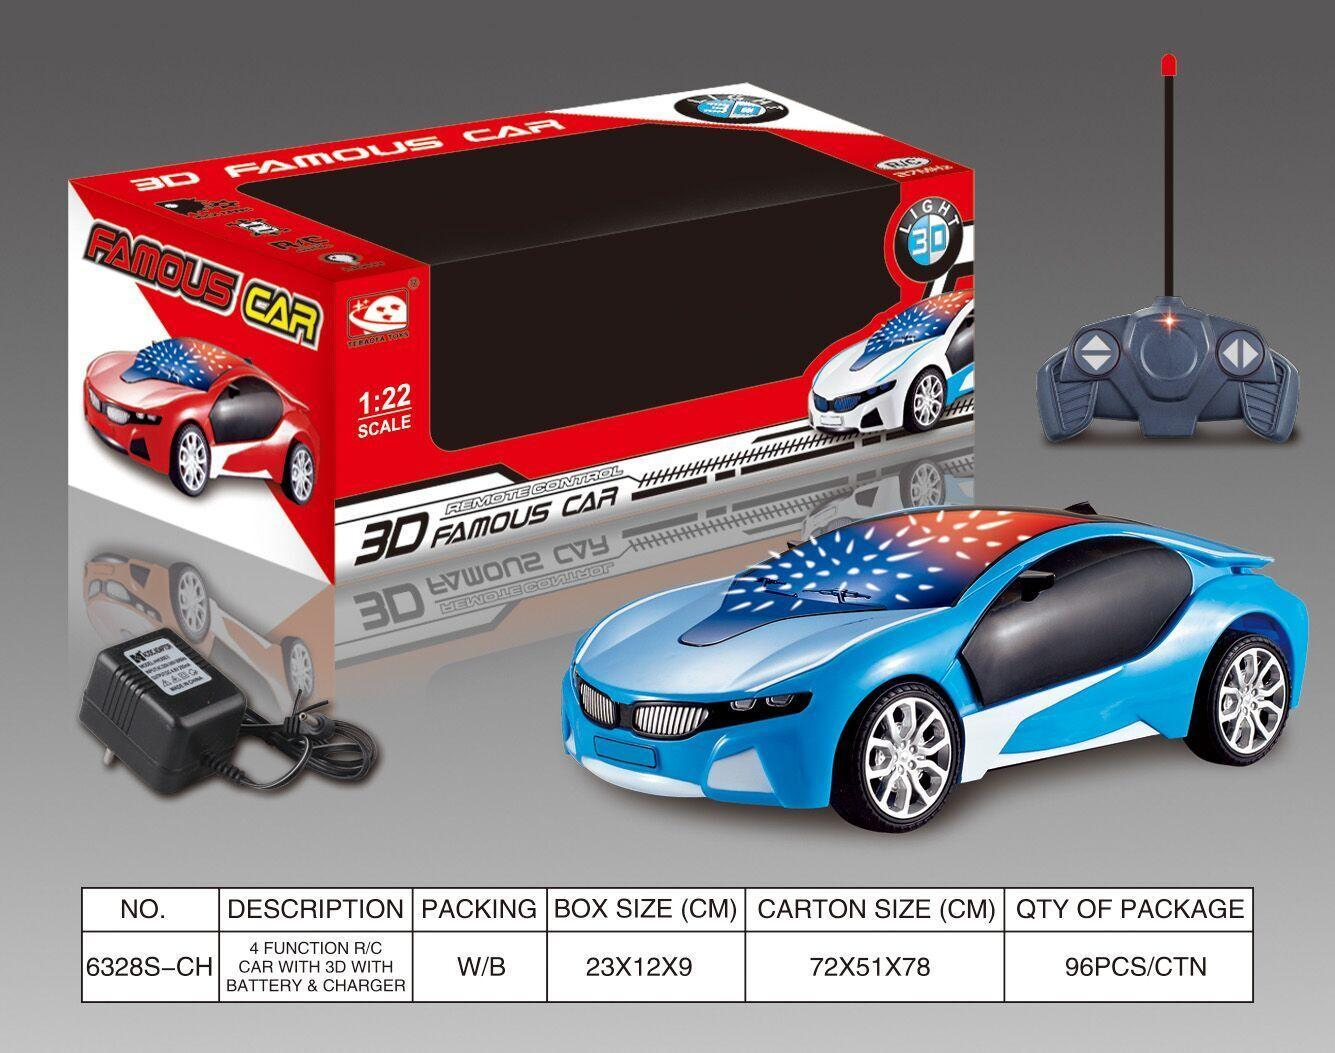 3D Famous Car 4 Channel RC Remote Control Cars with 3D Lights(not included Battery and Charger ) No.:6328S-CH